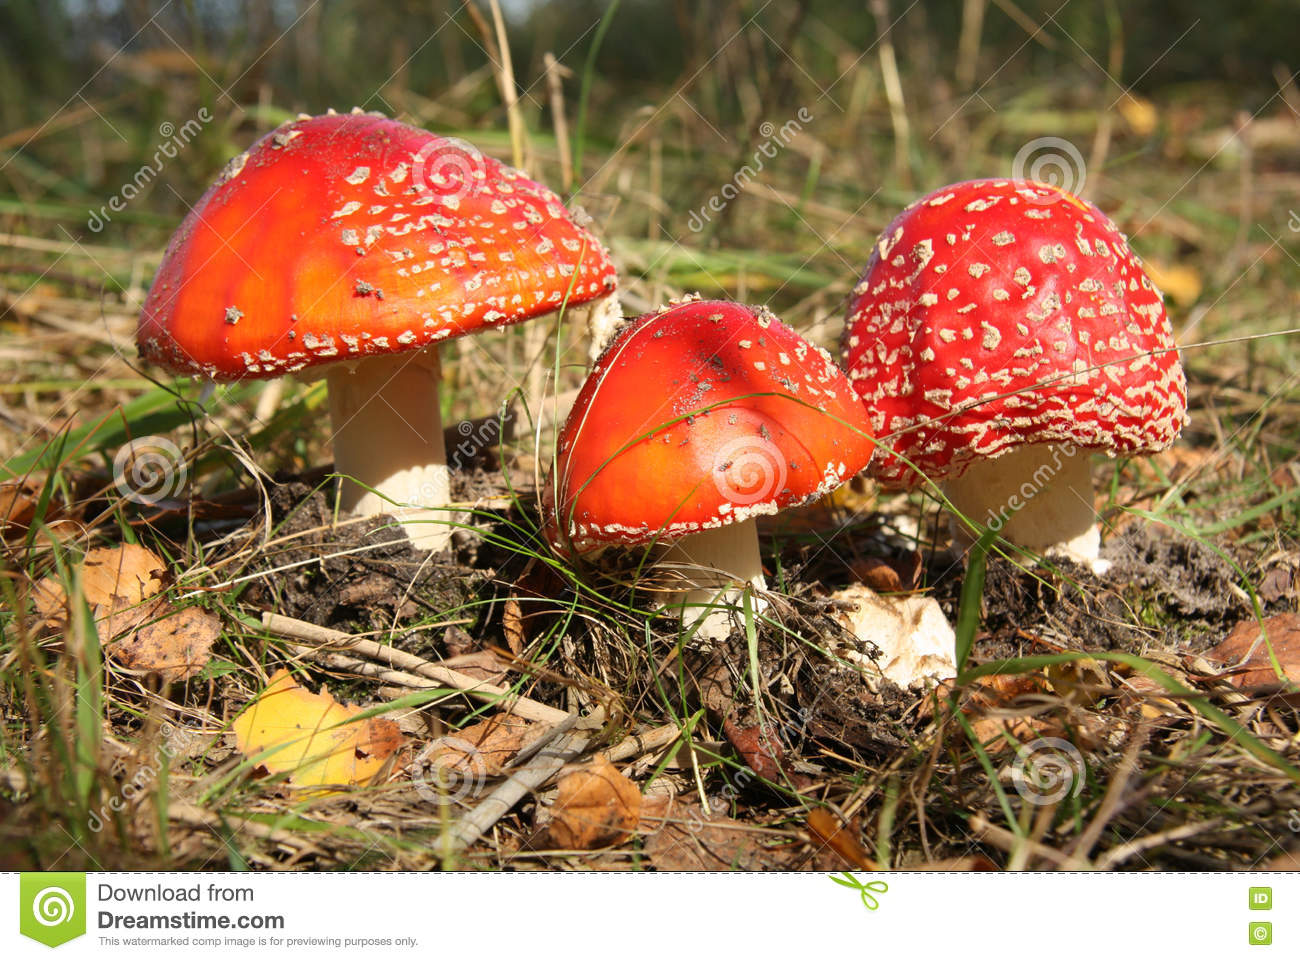 Poisonous mushrooms with name